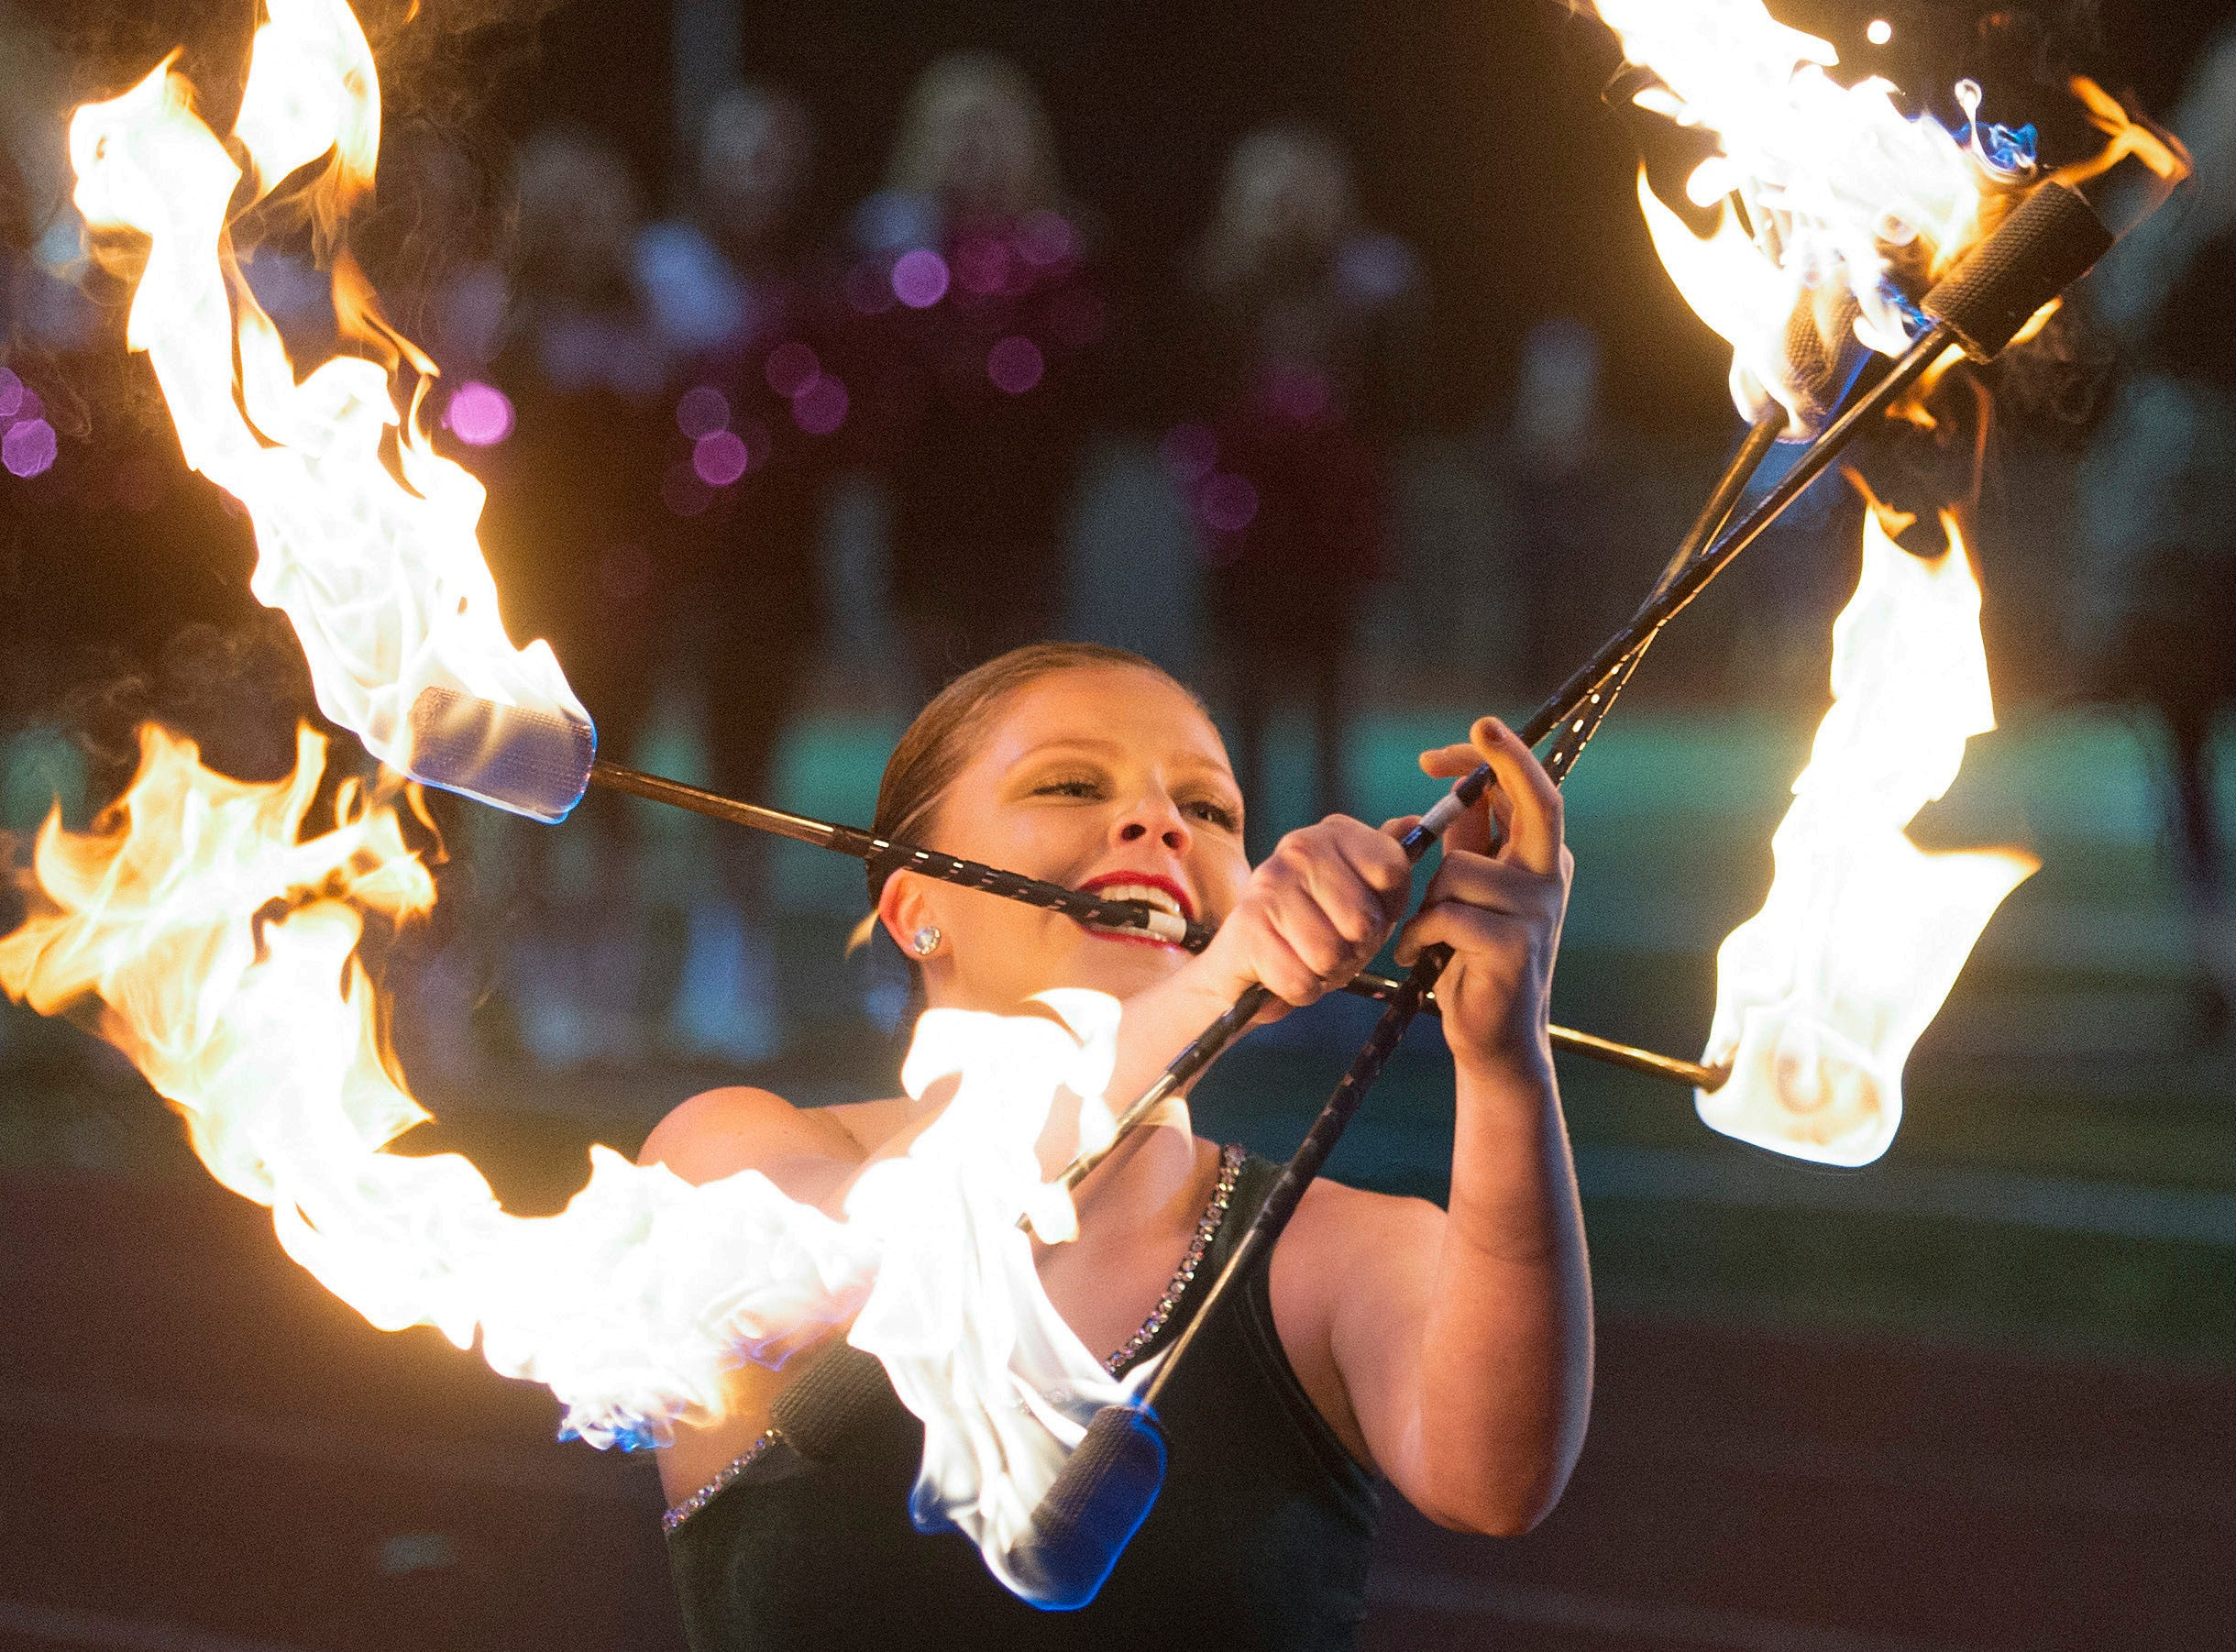 Fossil Ridge baton spinner Katie Harris holds batons on fire during half-time as the SaberCats take on Poudre at French Field on Friday, October 26, 2018.